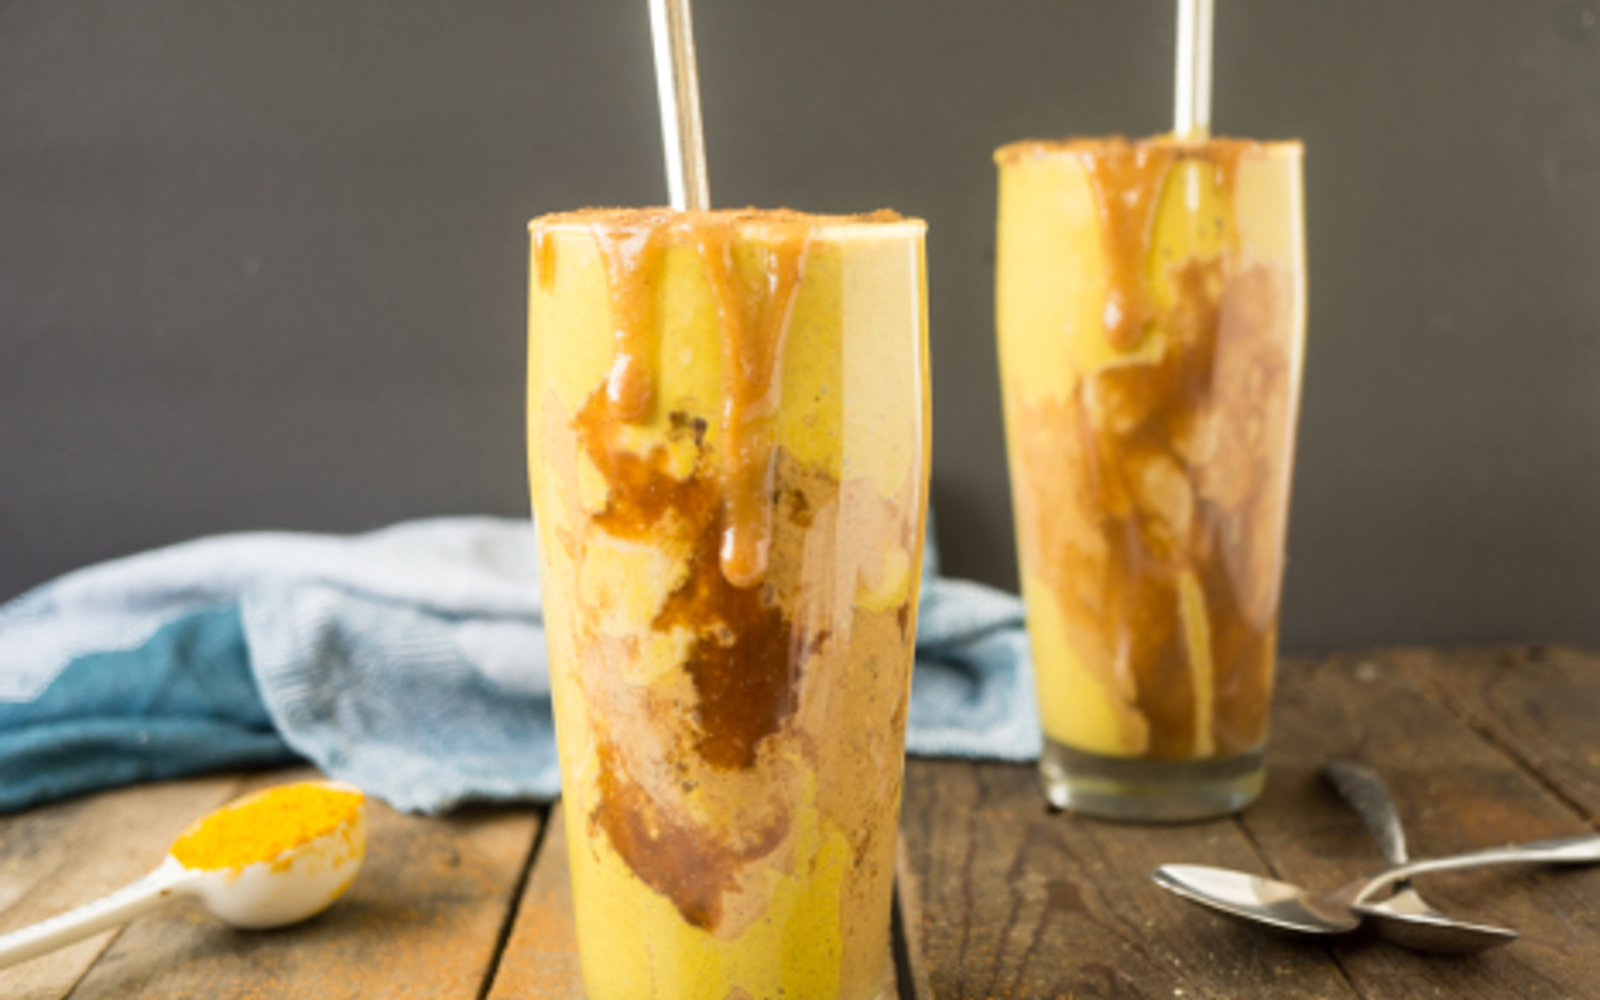 Vegan Peanut Butter Caramel Ribbon Golden Milkshake